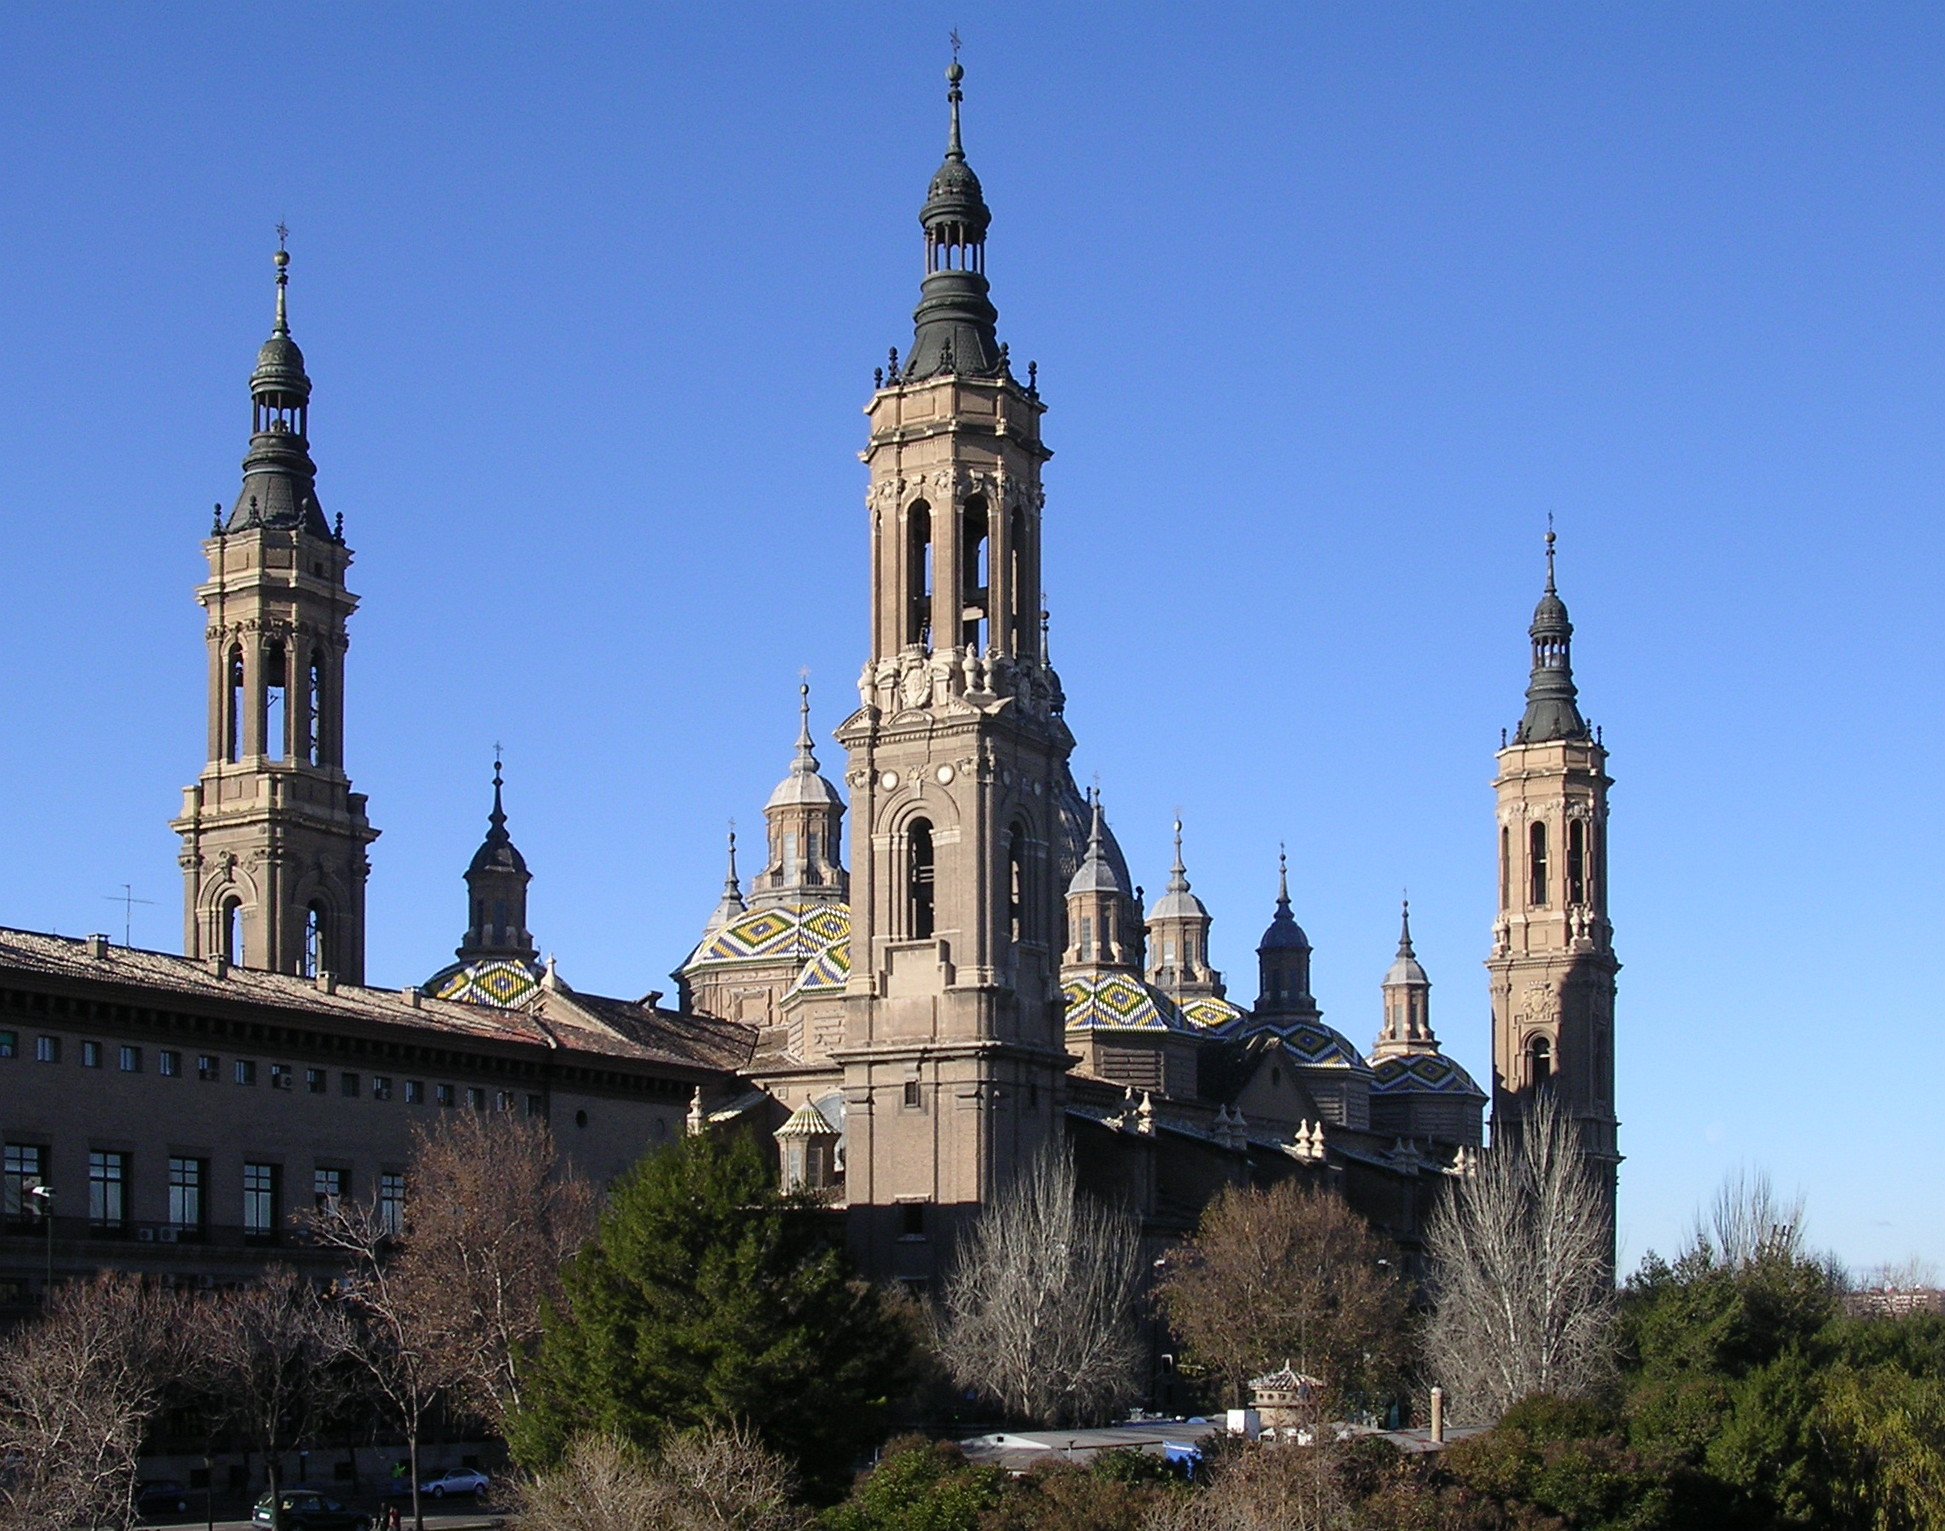 Architecture of cathedrals and great churches wikipedia the basilica of our lady of the pillar zaragoza spain is in the baroque style biocorpaavc Choice Image